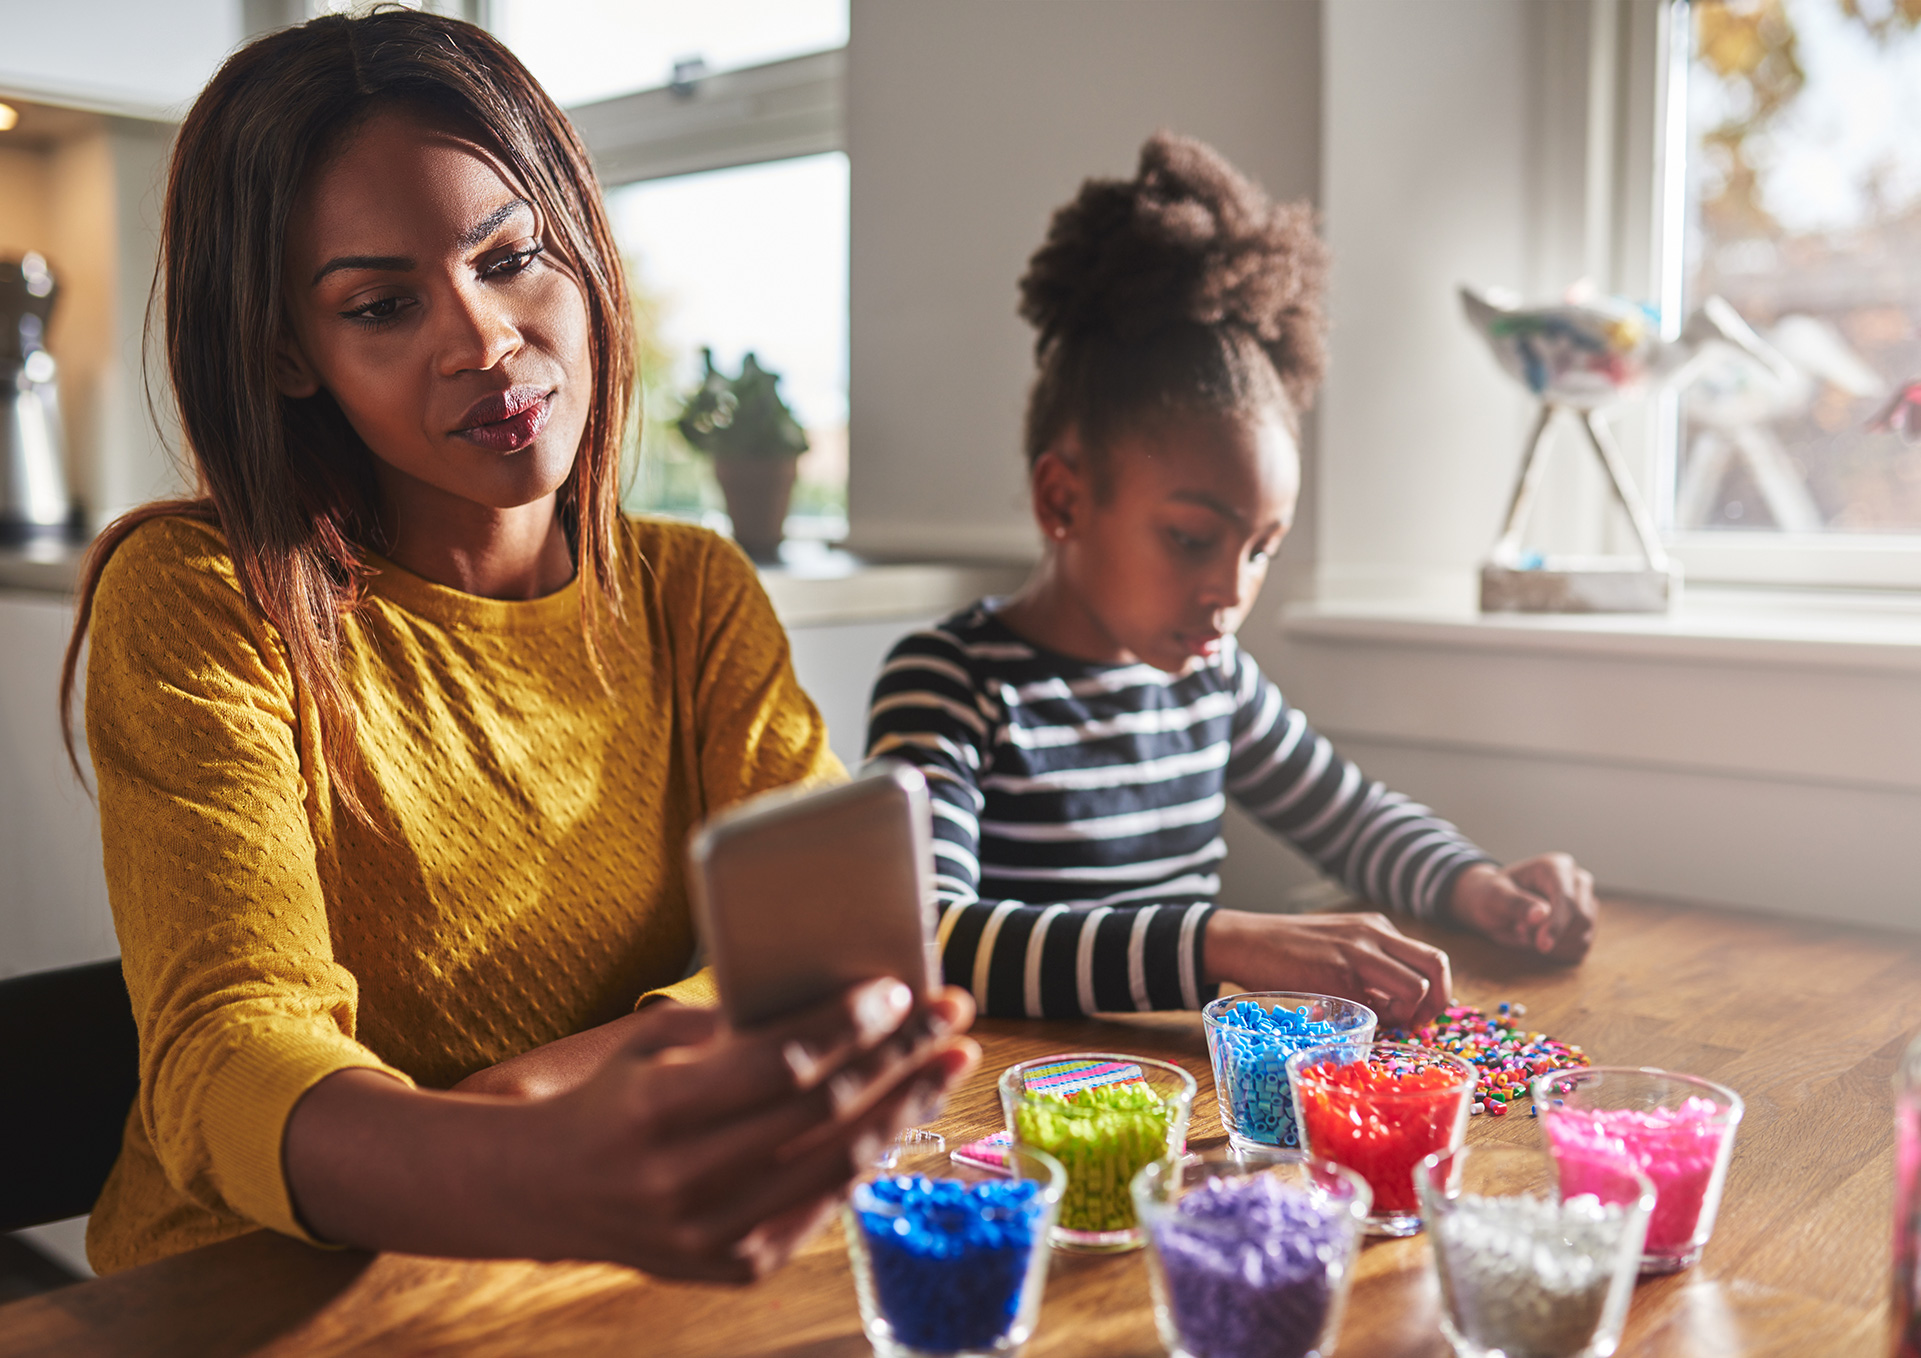 Problematic phone use, depression, and technology interference among mothers, Psychology of Popular Media, 2020